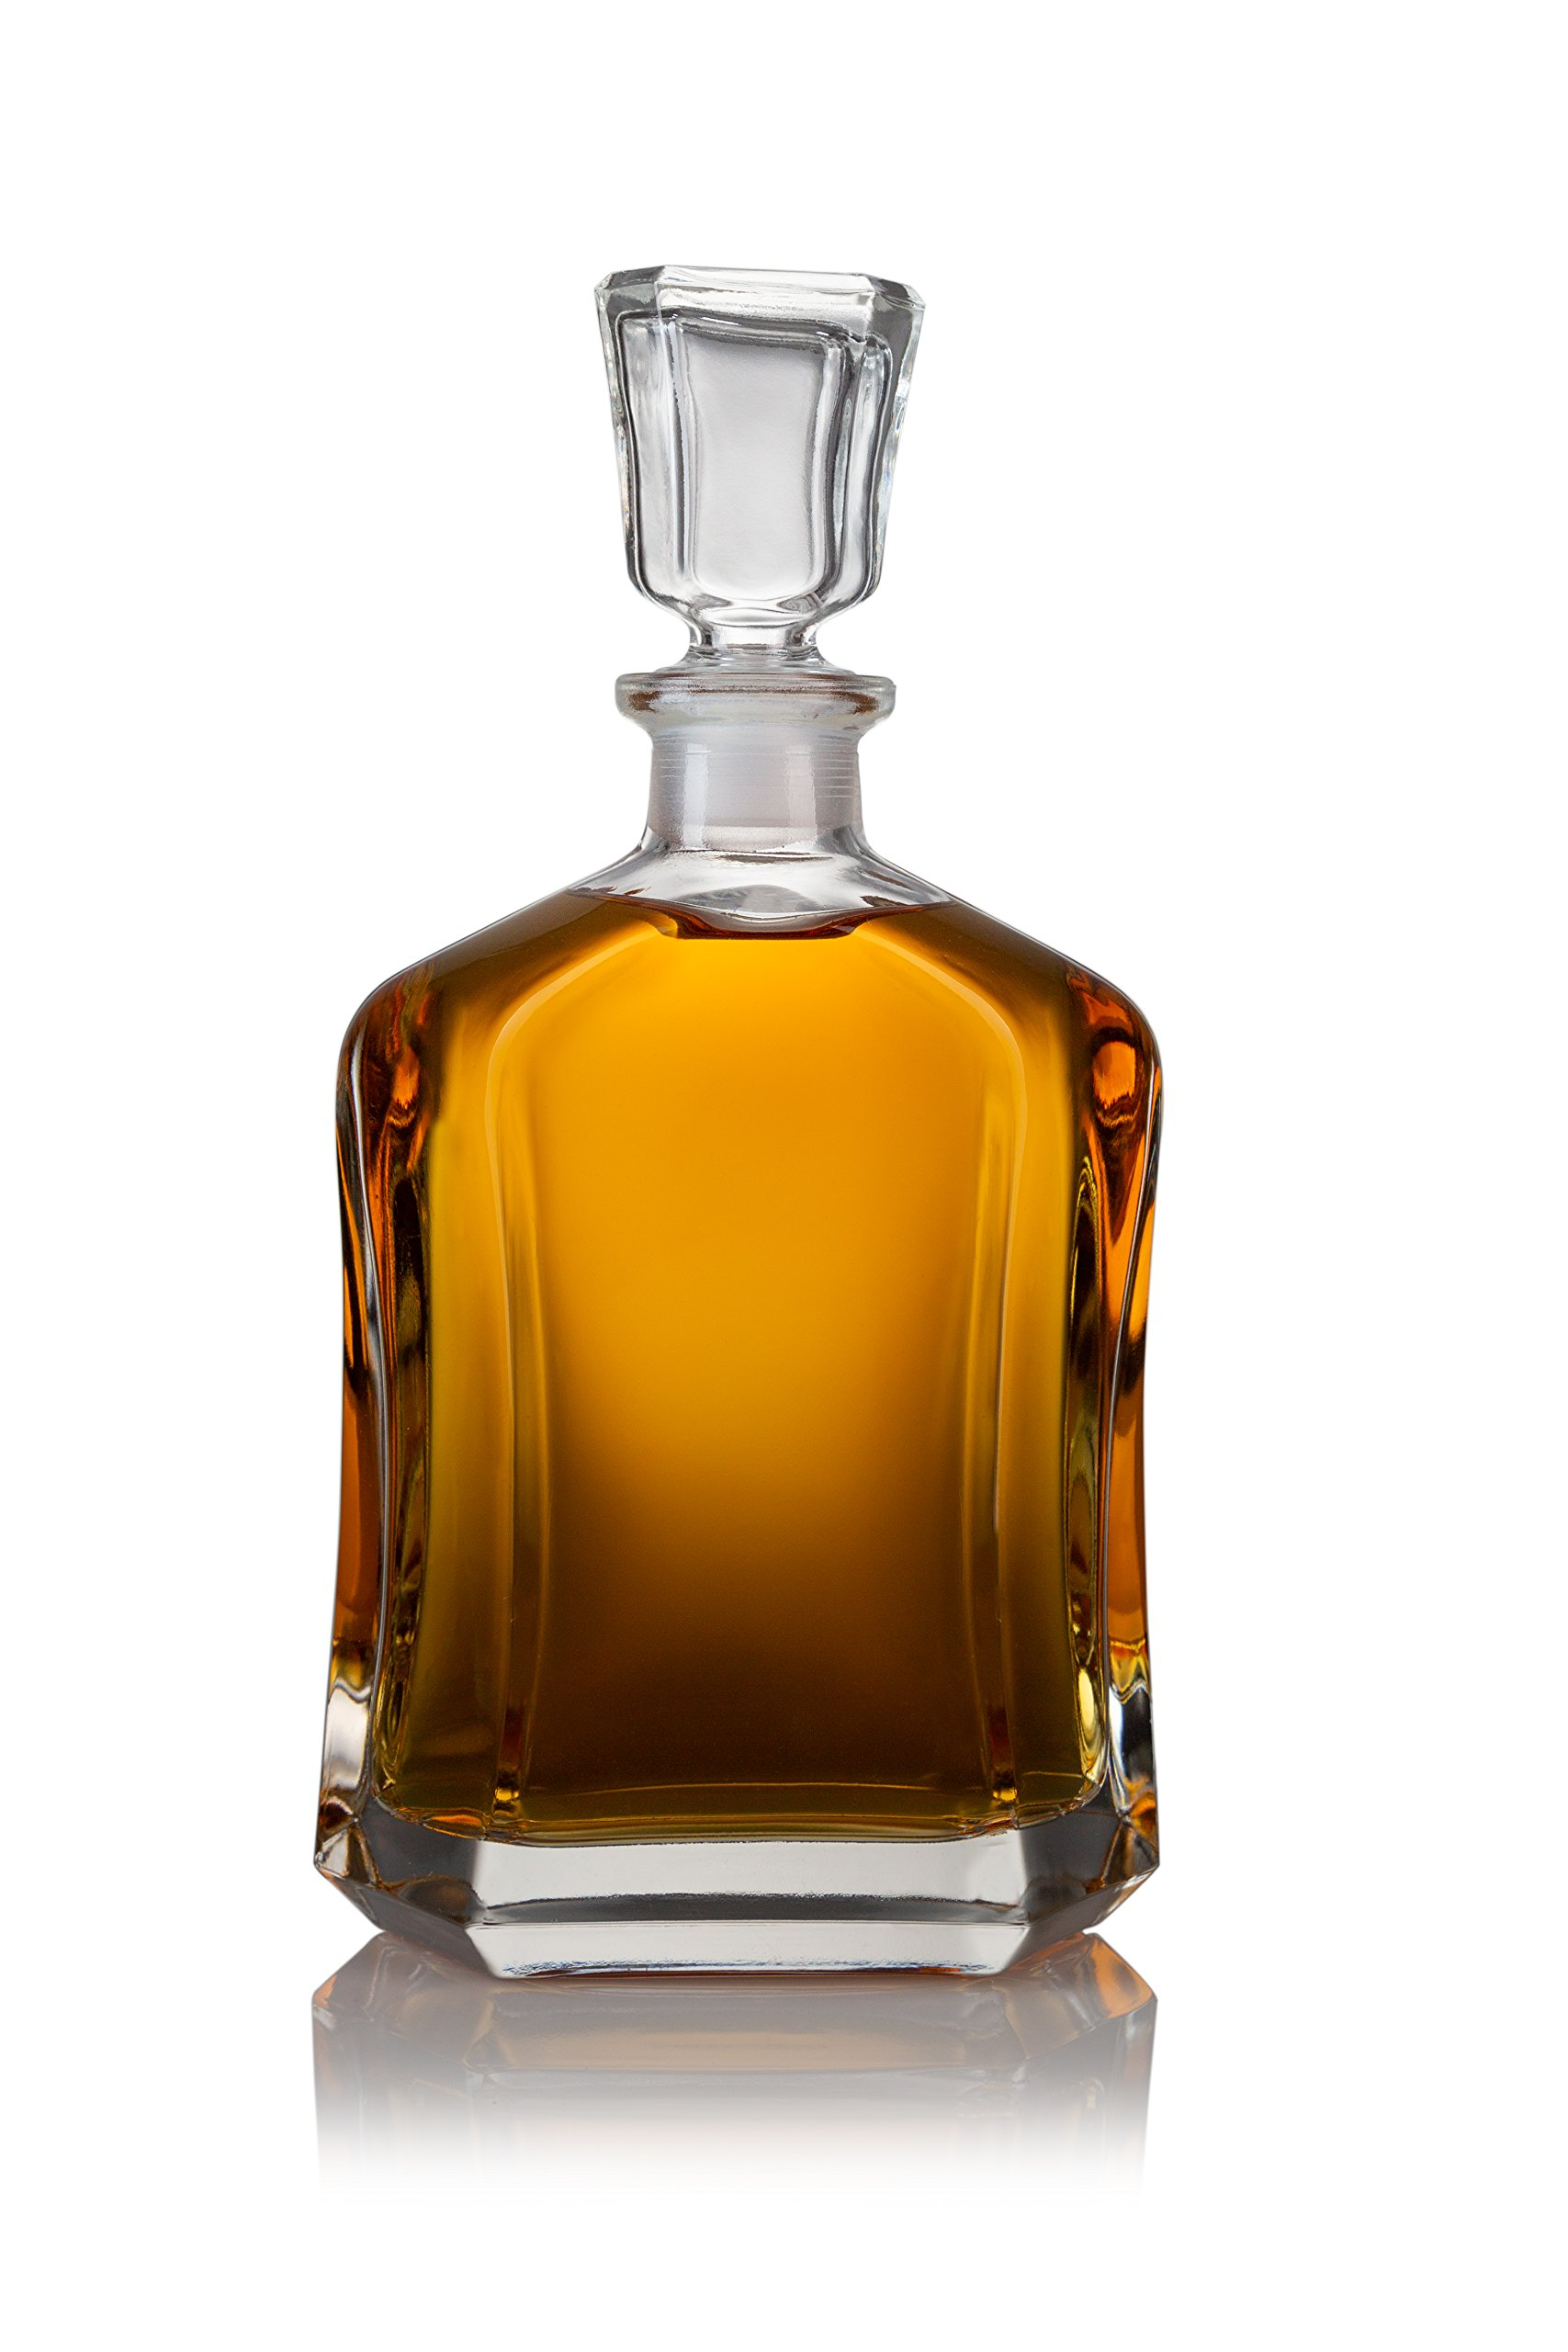 James Scott European Made Capitol Glass Decanter with Airtight Symmetrical Stopper - Whiskey Decanter for Wine, Bourbon, Brandy, Liquor, Juice, Water, Mouthwash   23.75 oz